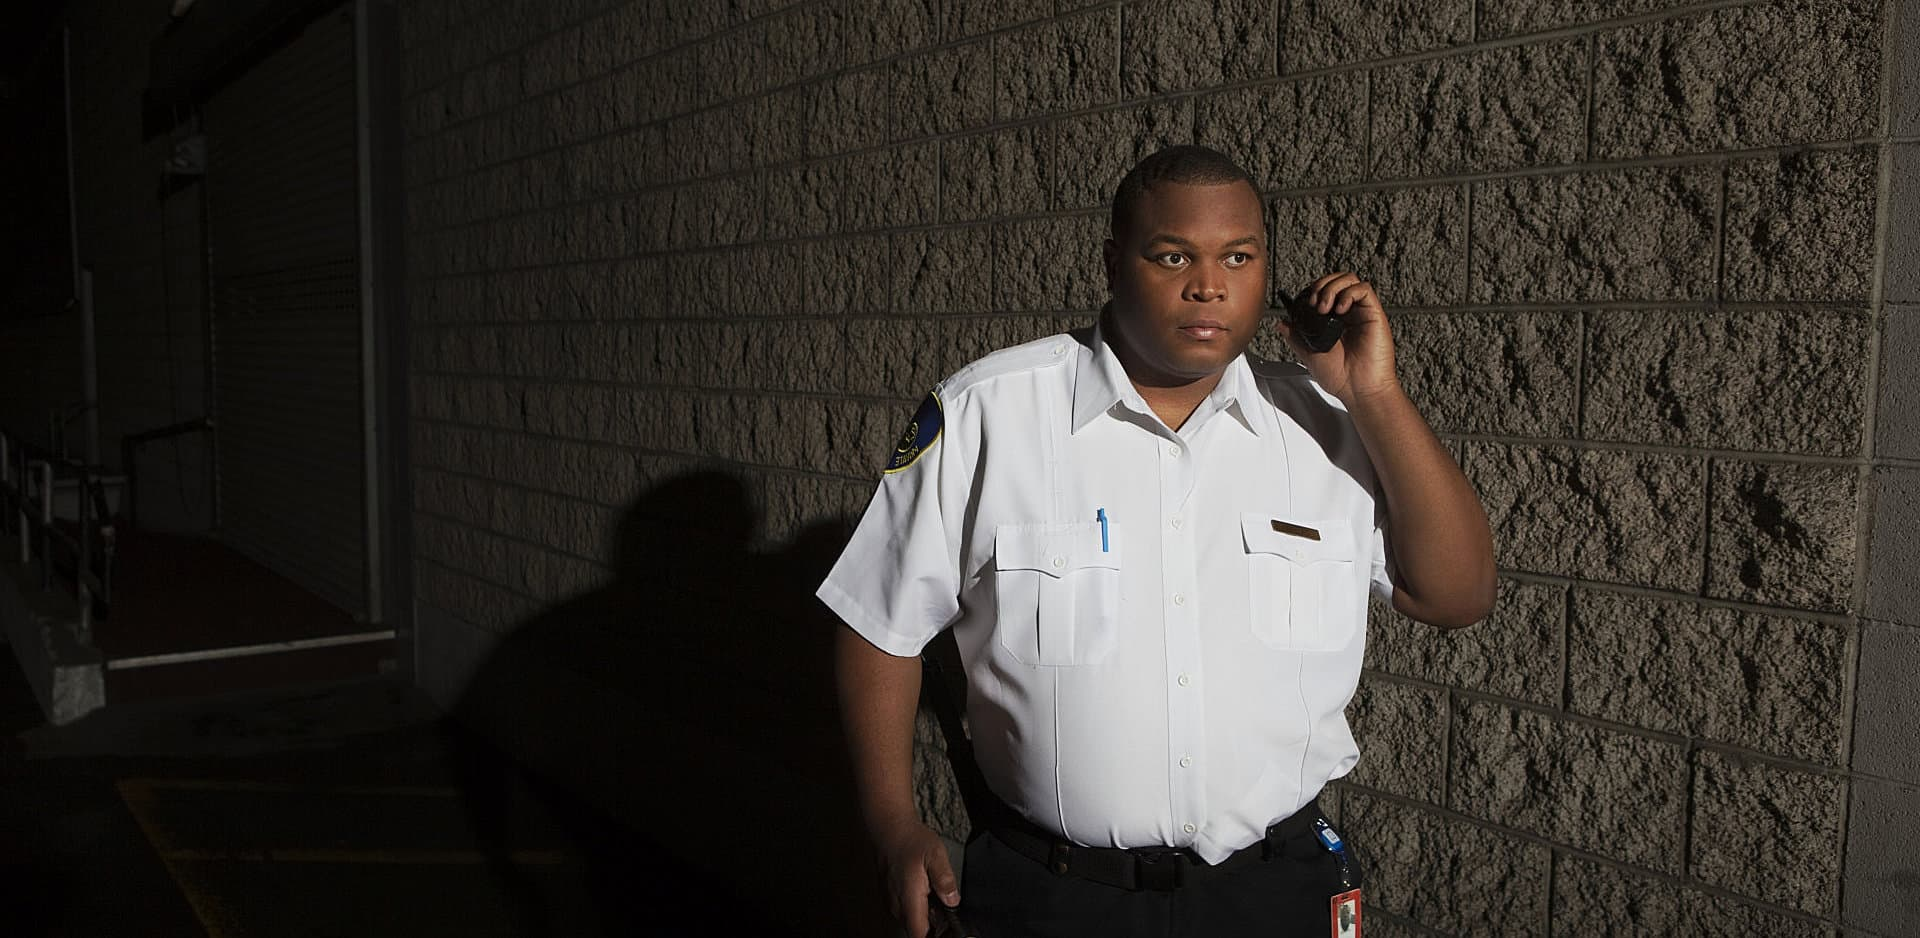 security guard holding walkie-talkie